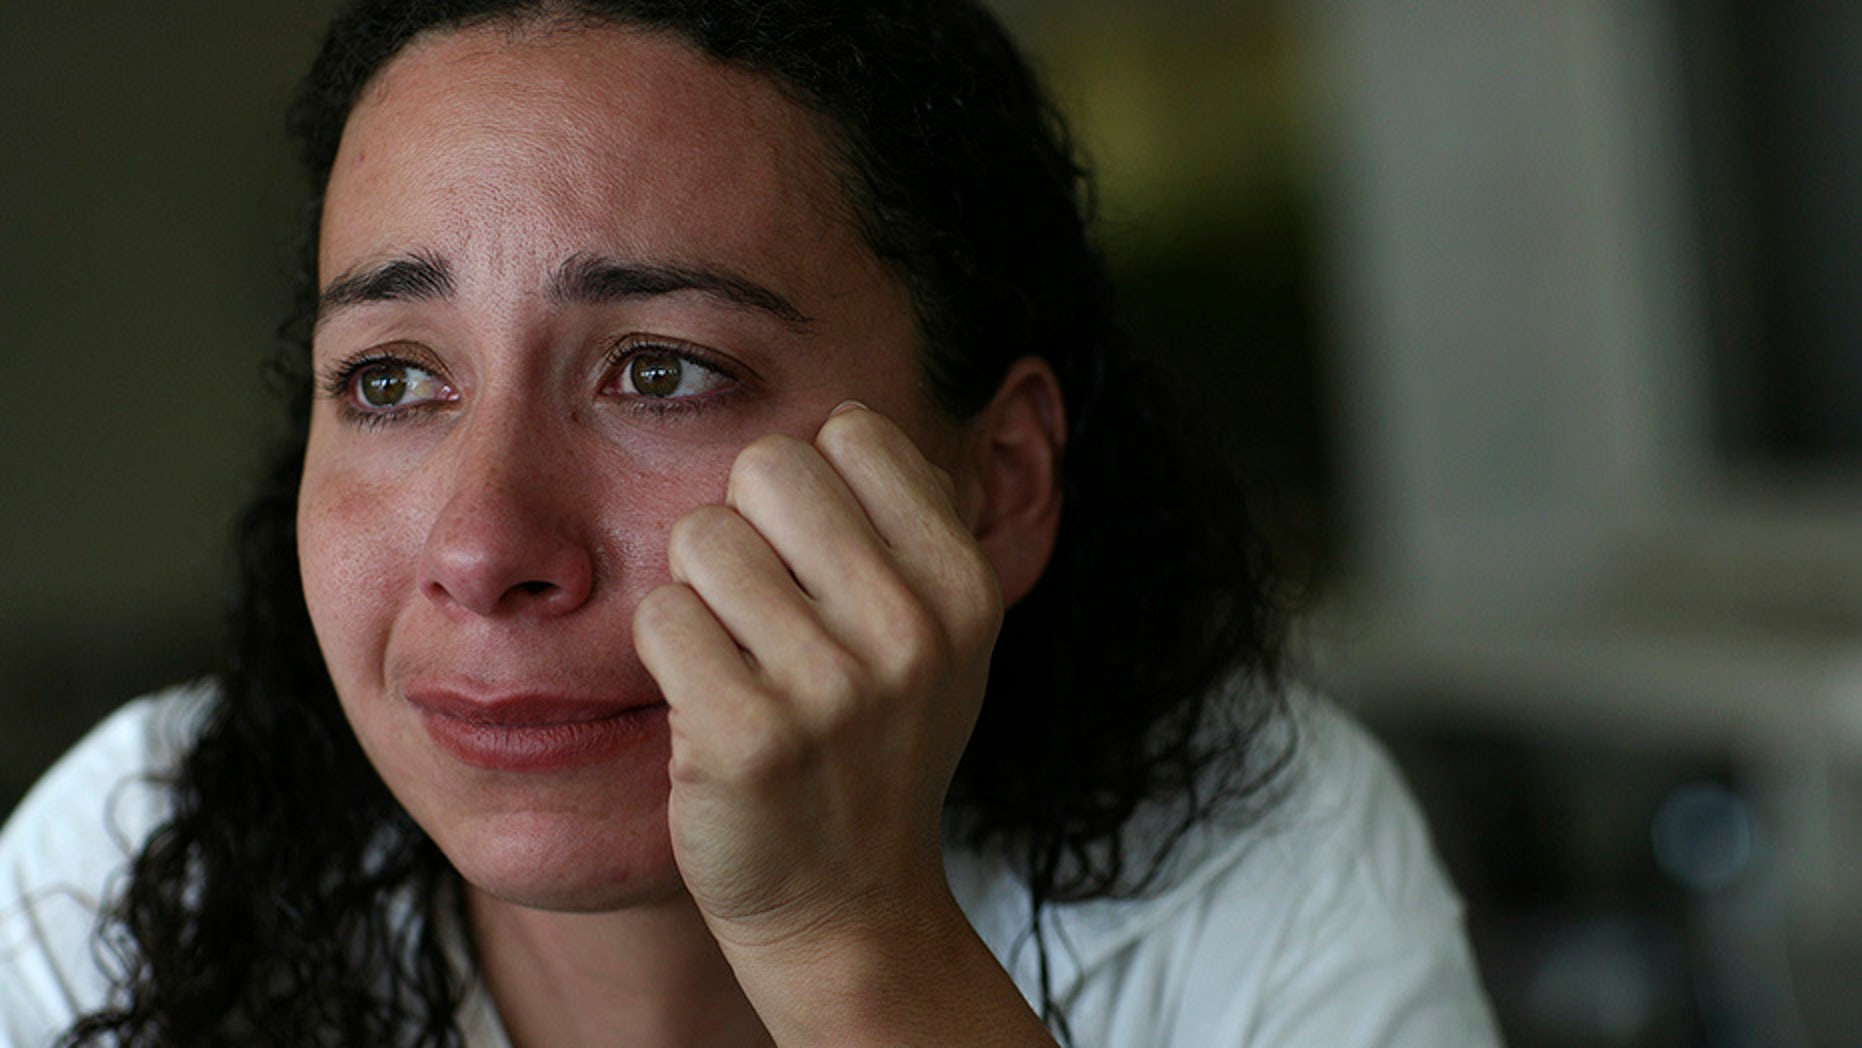 Hannah Overton, a South Texas mother of five wrongfully convicted in the 2006 salt poisoning death of her 4-year-old foster son, will receive more than $500,000 in state compensation for the years she spent imprisoned for the crime.